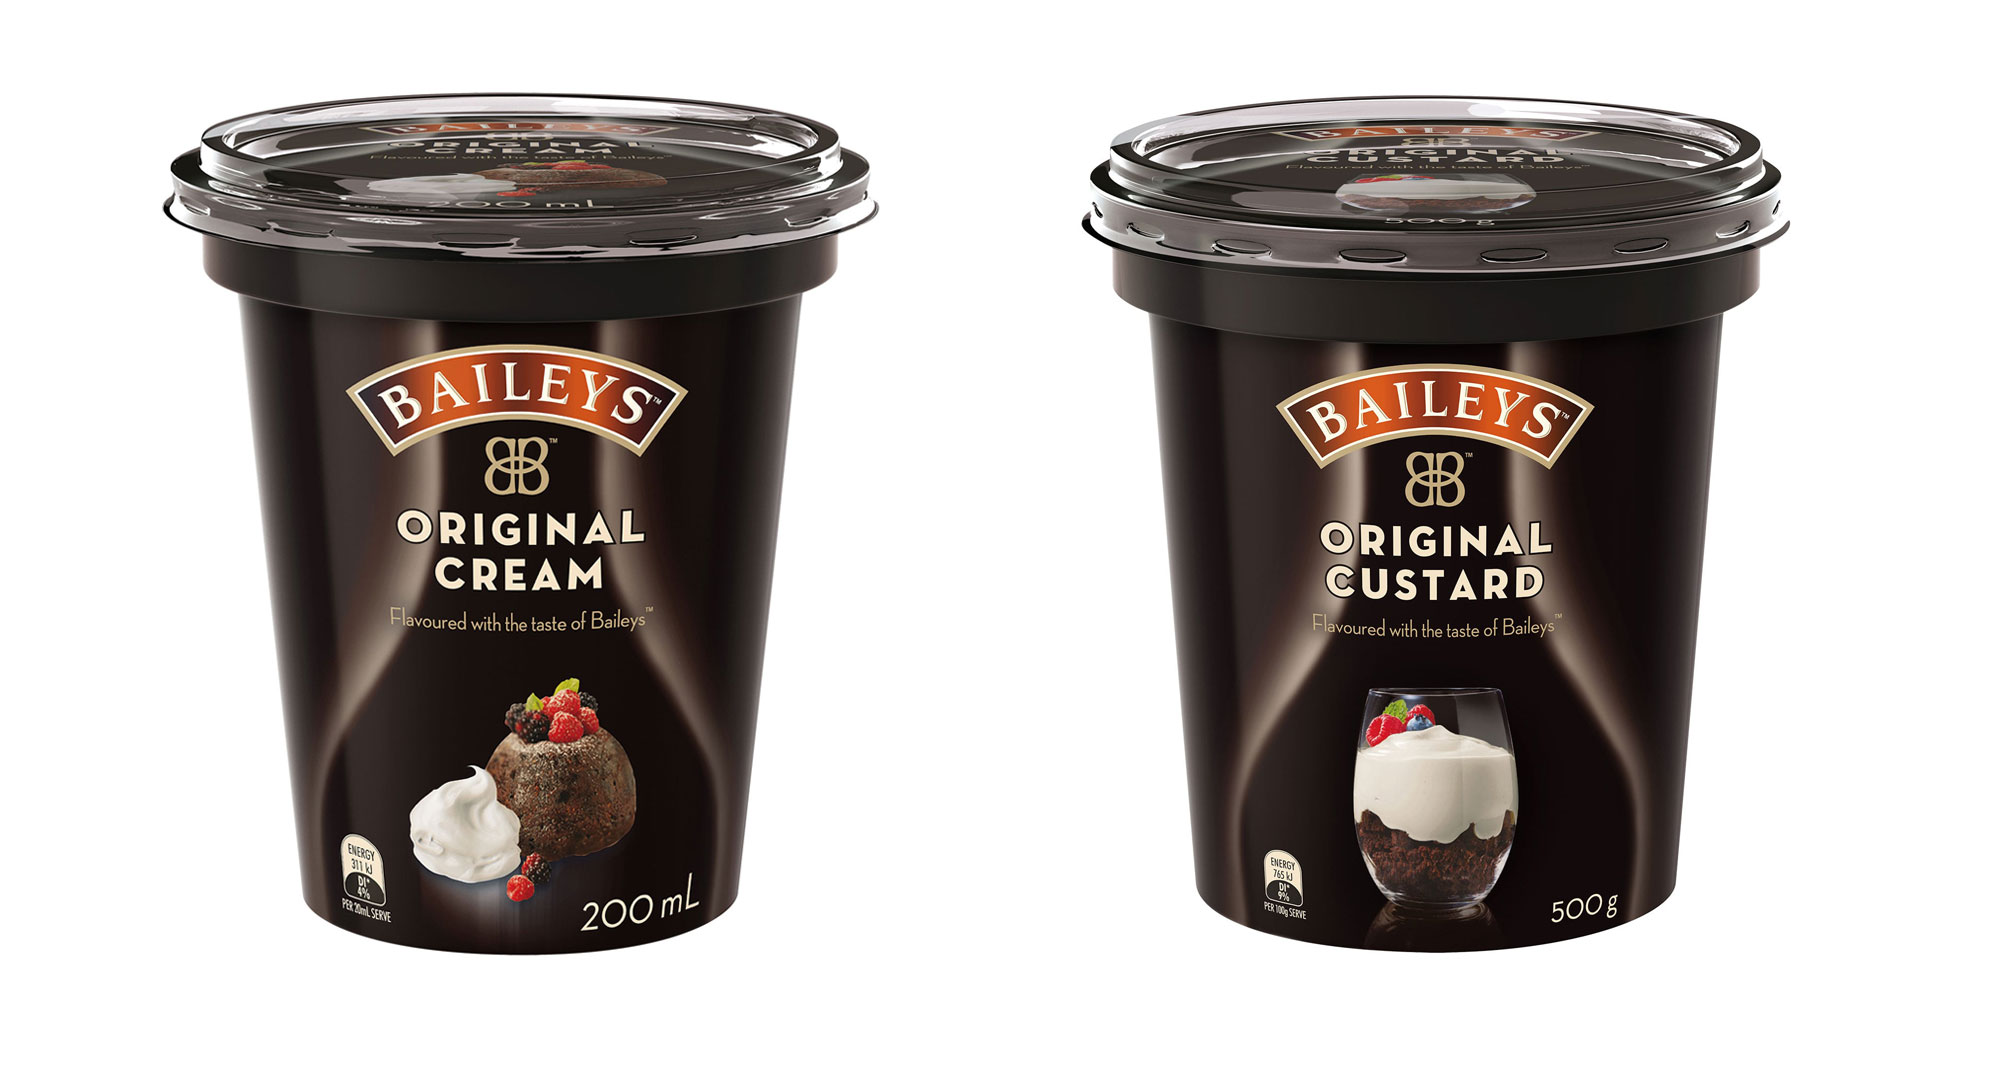 Baileys Cream Custard Tubs, FMCG, Packaging, Food styling